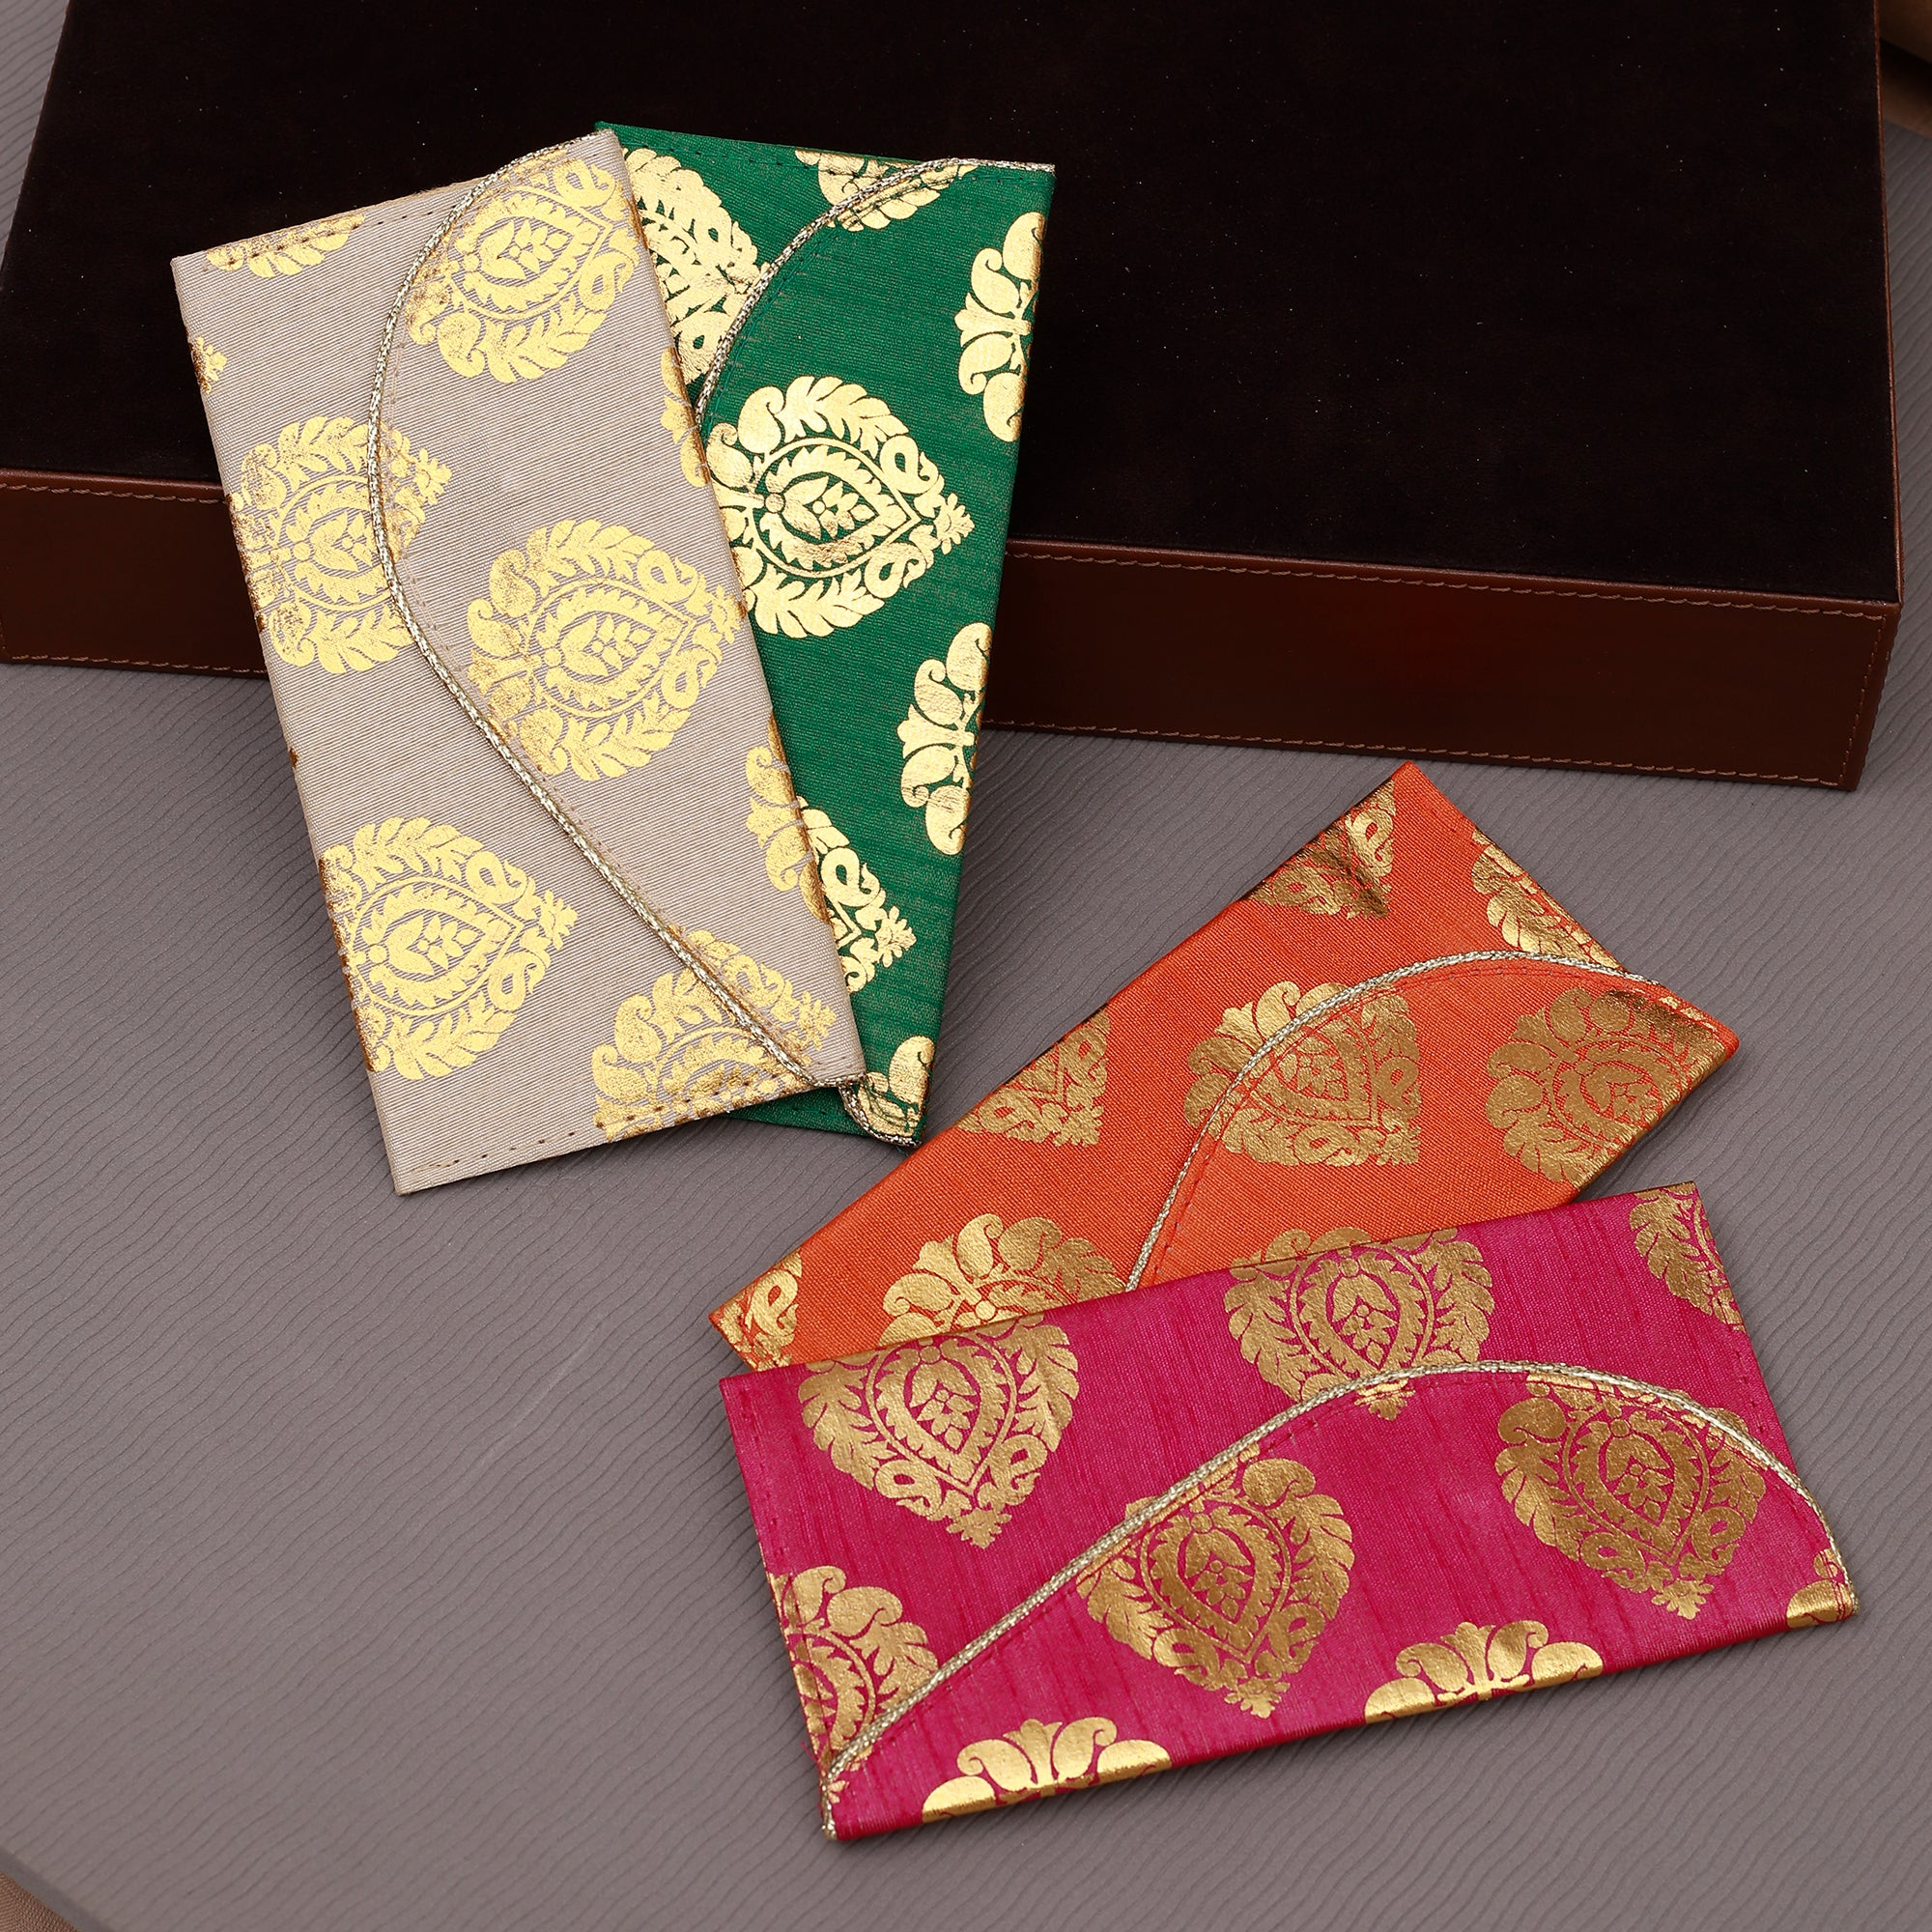 The Auspicious Leafy Sagan Lifafa (Set of 4)